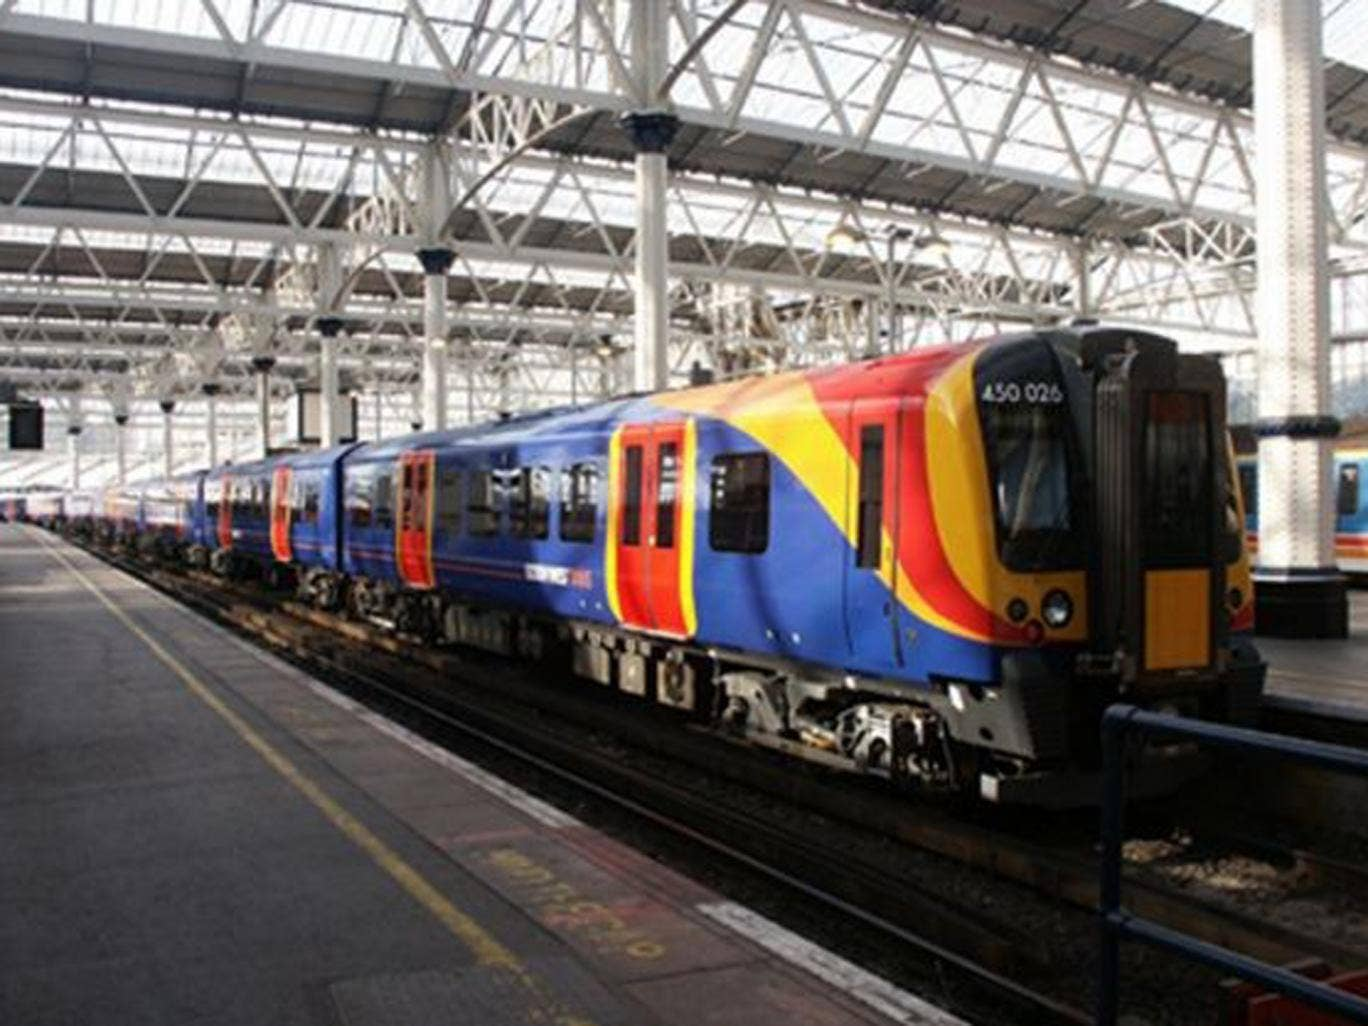 NetworkRailis already forecast to have delivered efficiencies of 40 per cent in running therailways from 2004 and 2014 and ORR said it expected to see a further 20 per cent from 2014 to 2019